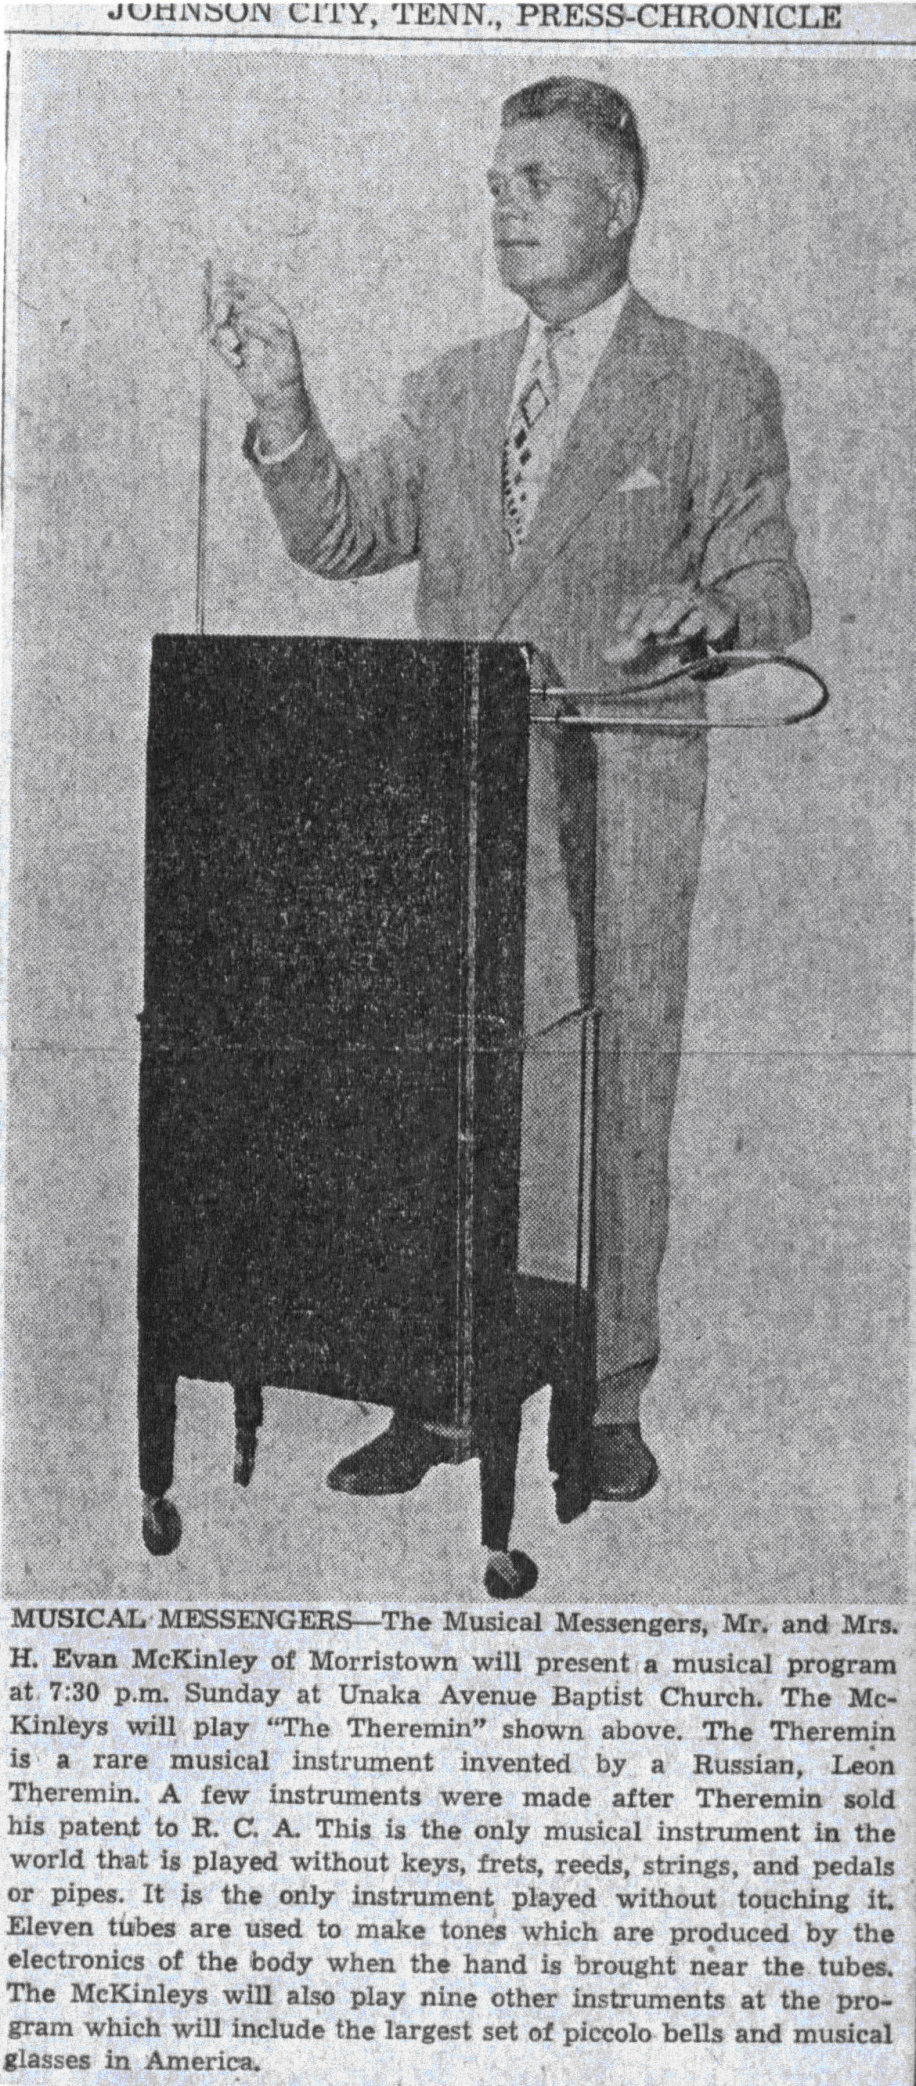 Man playing Theremin